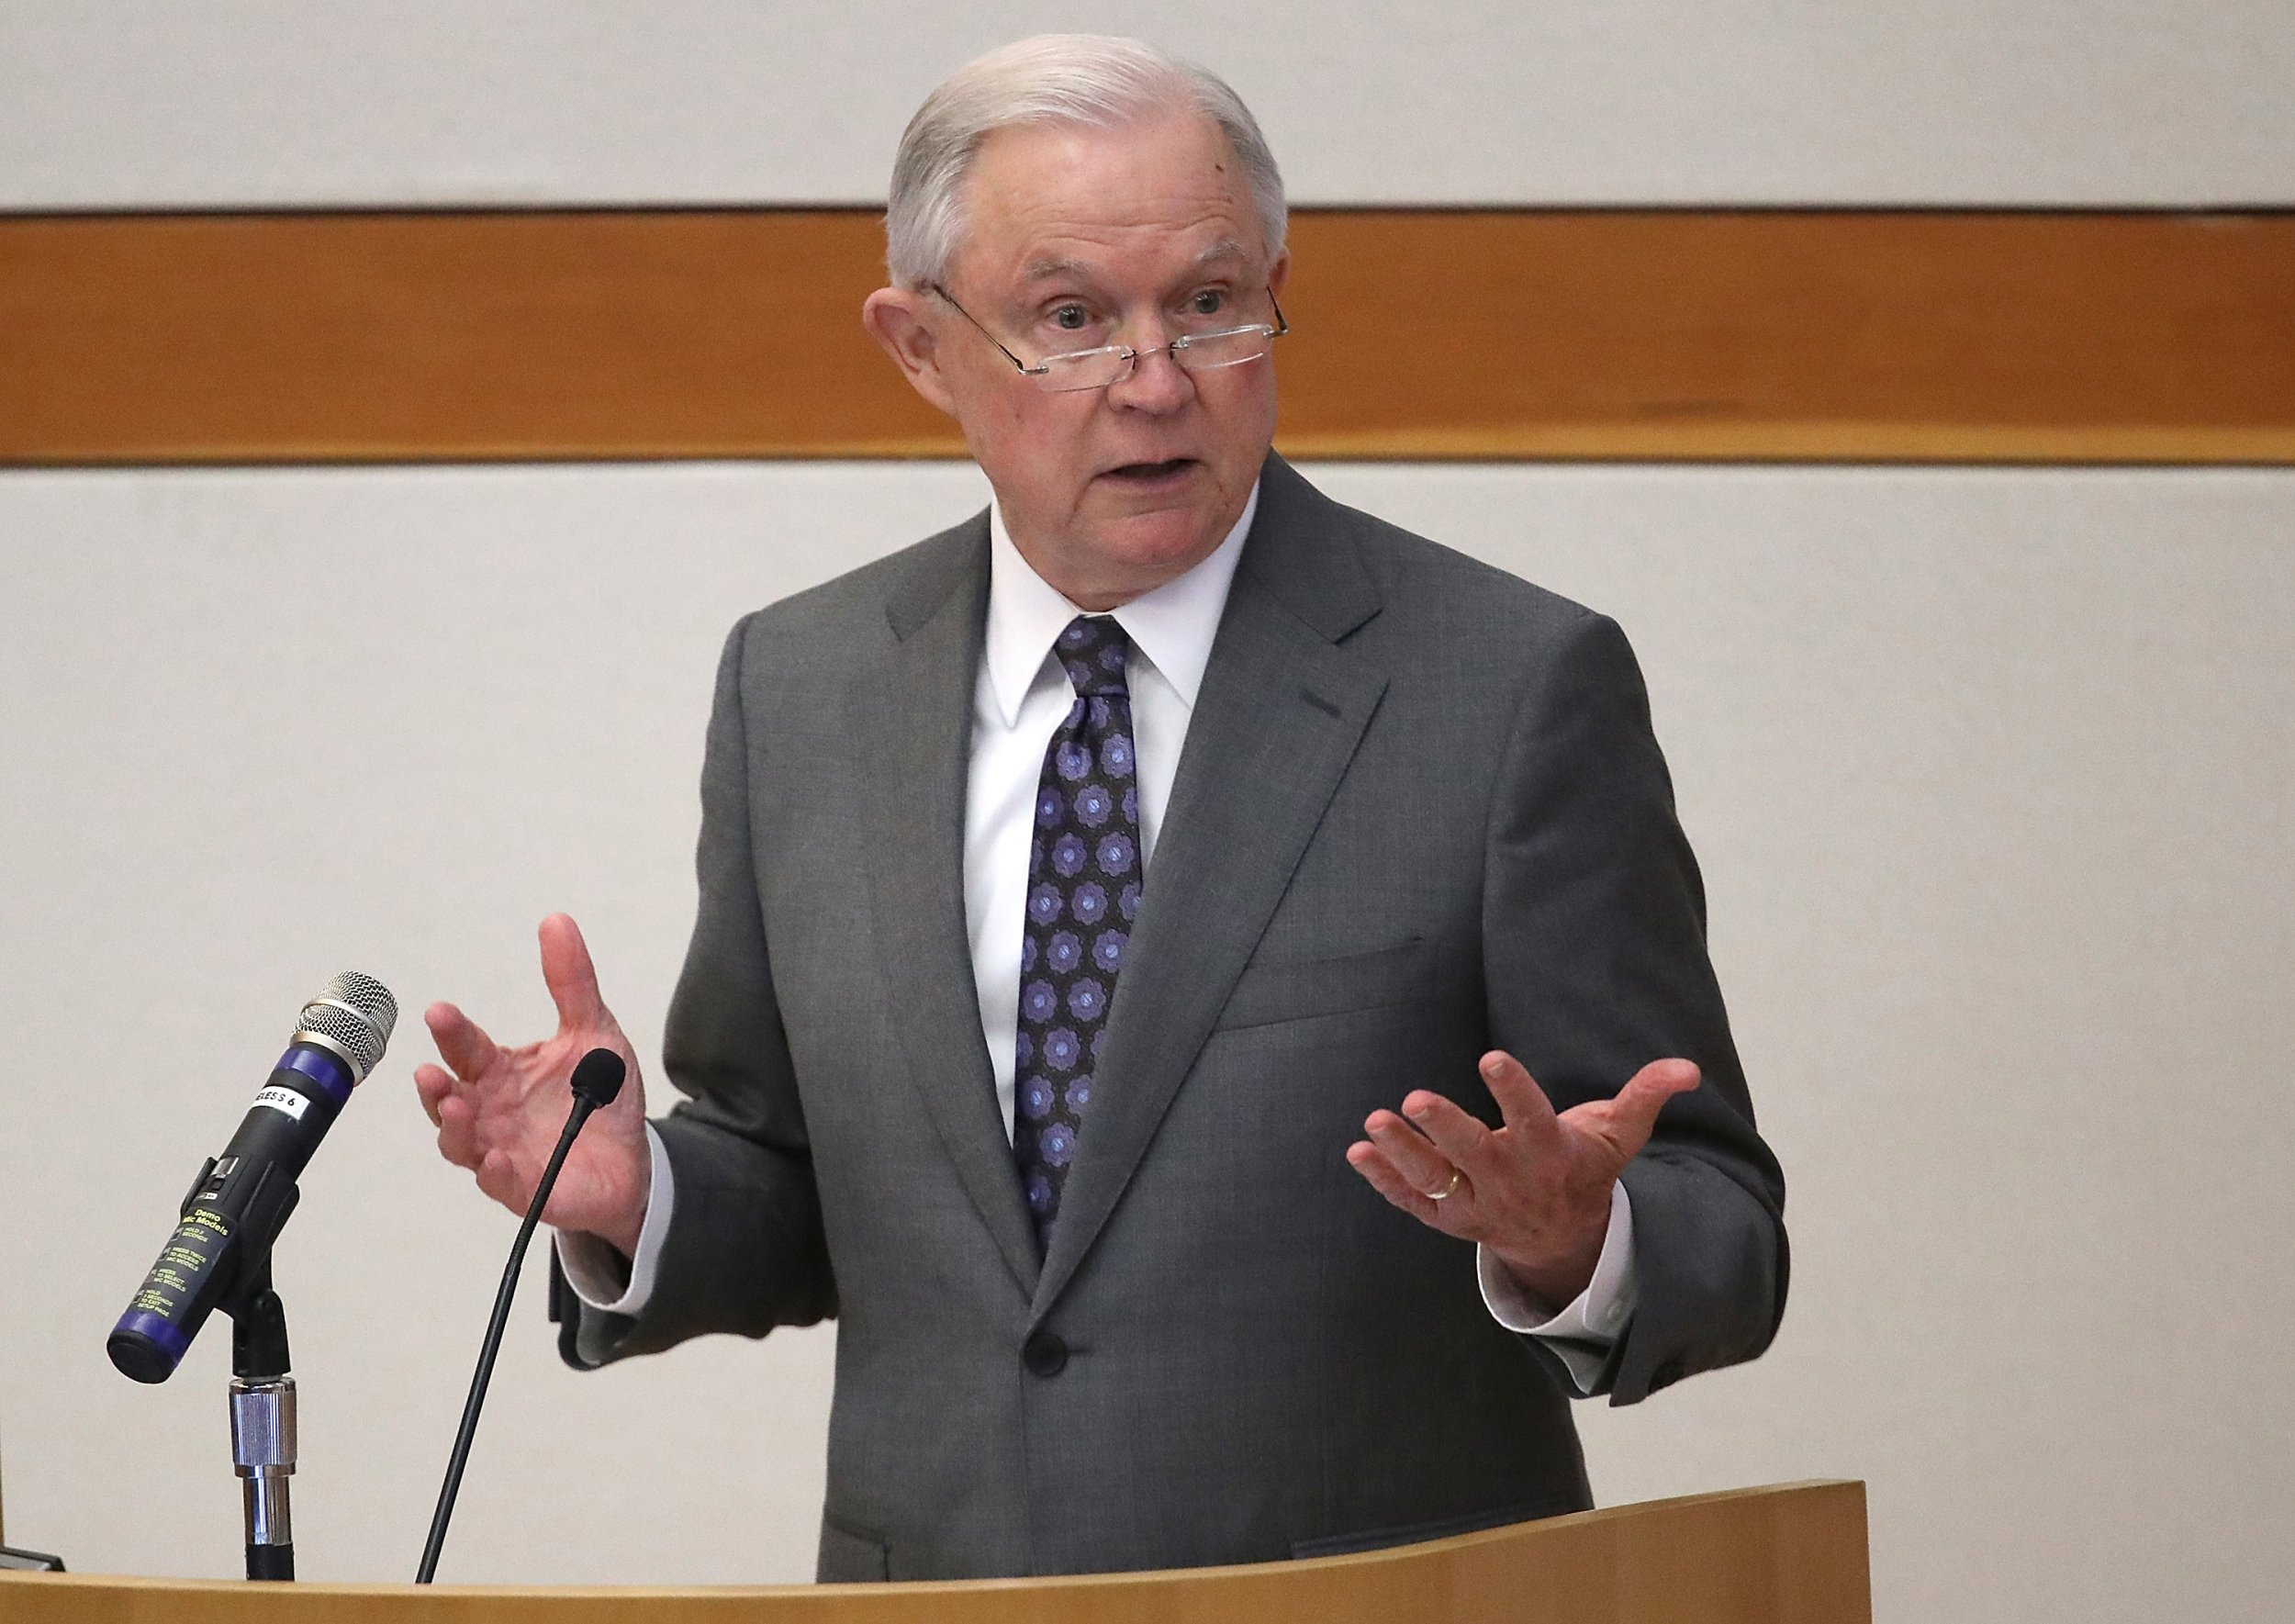 Jeff Sessions, gun deaths, antifa, black lives matter